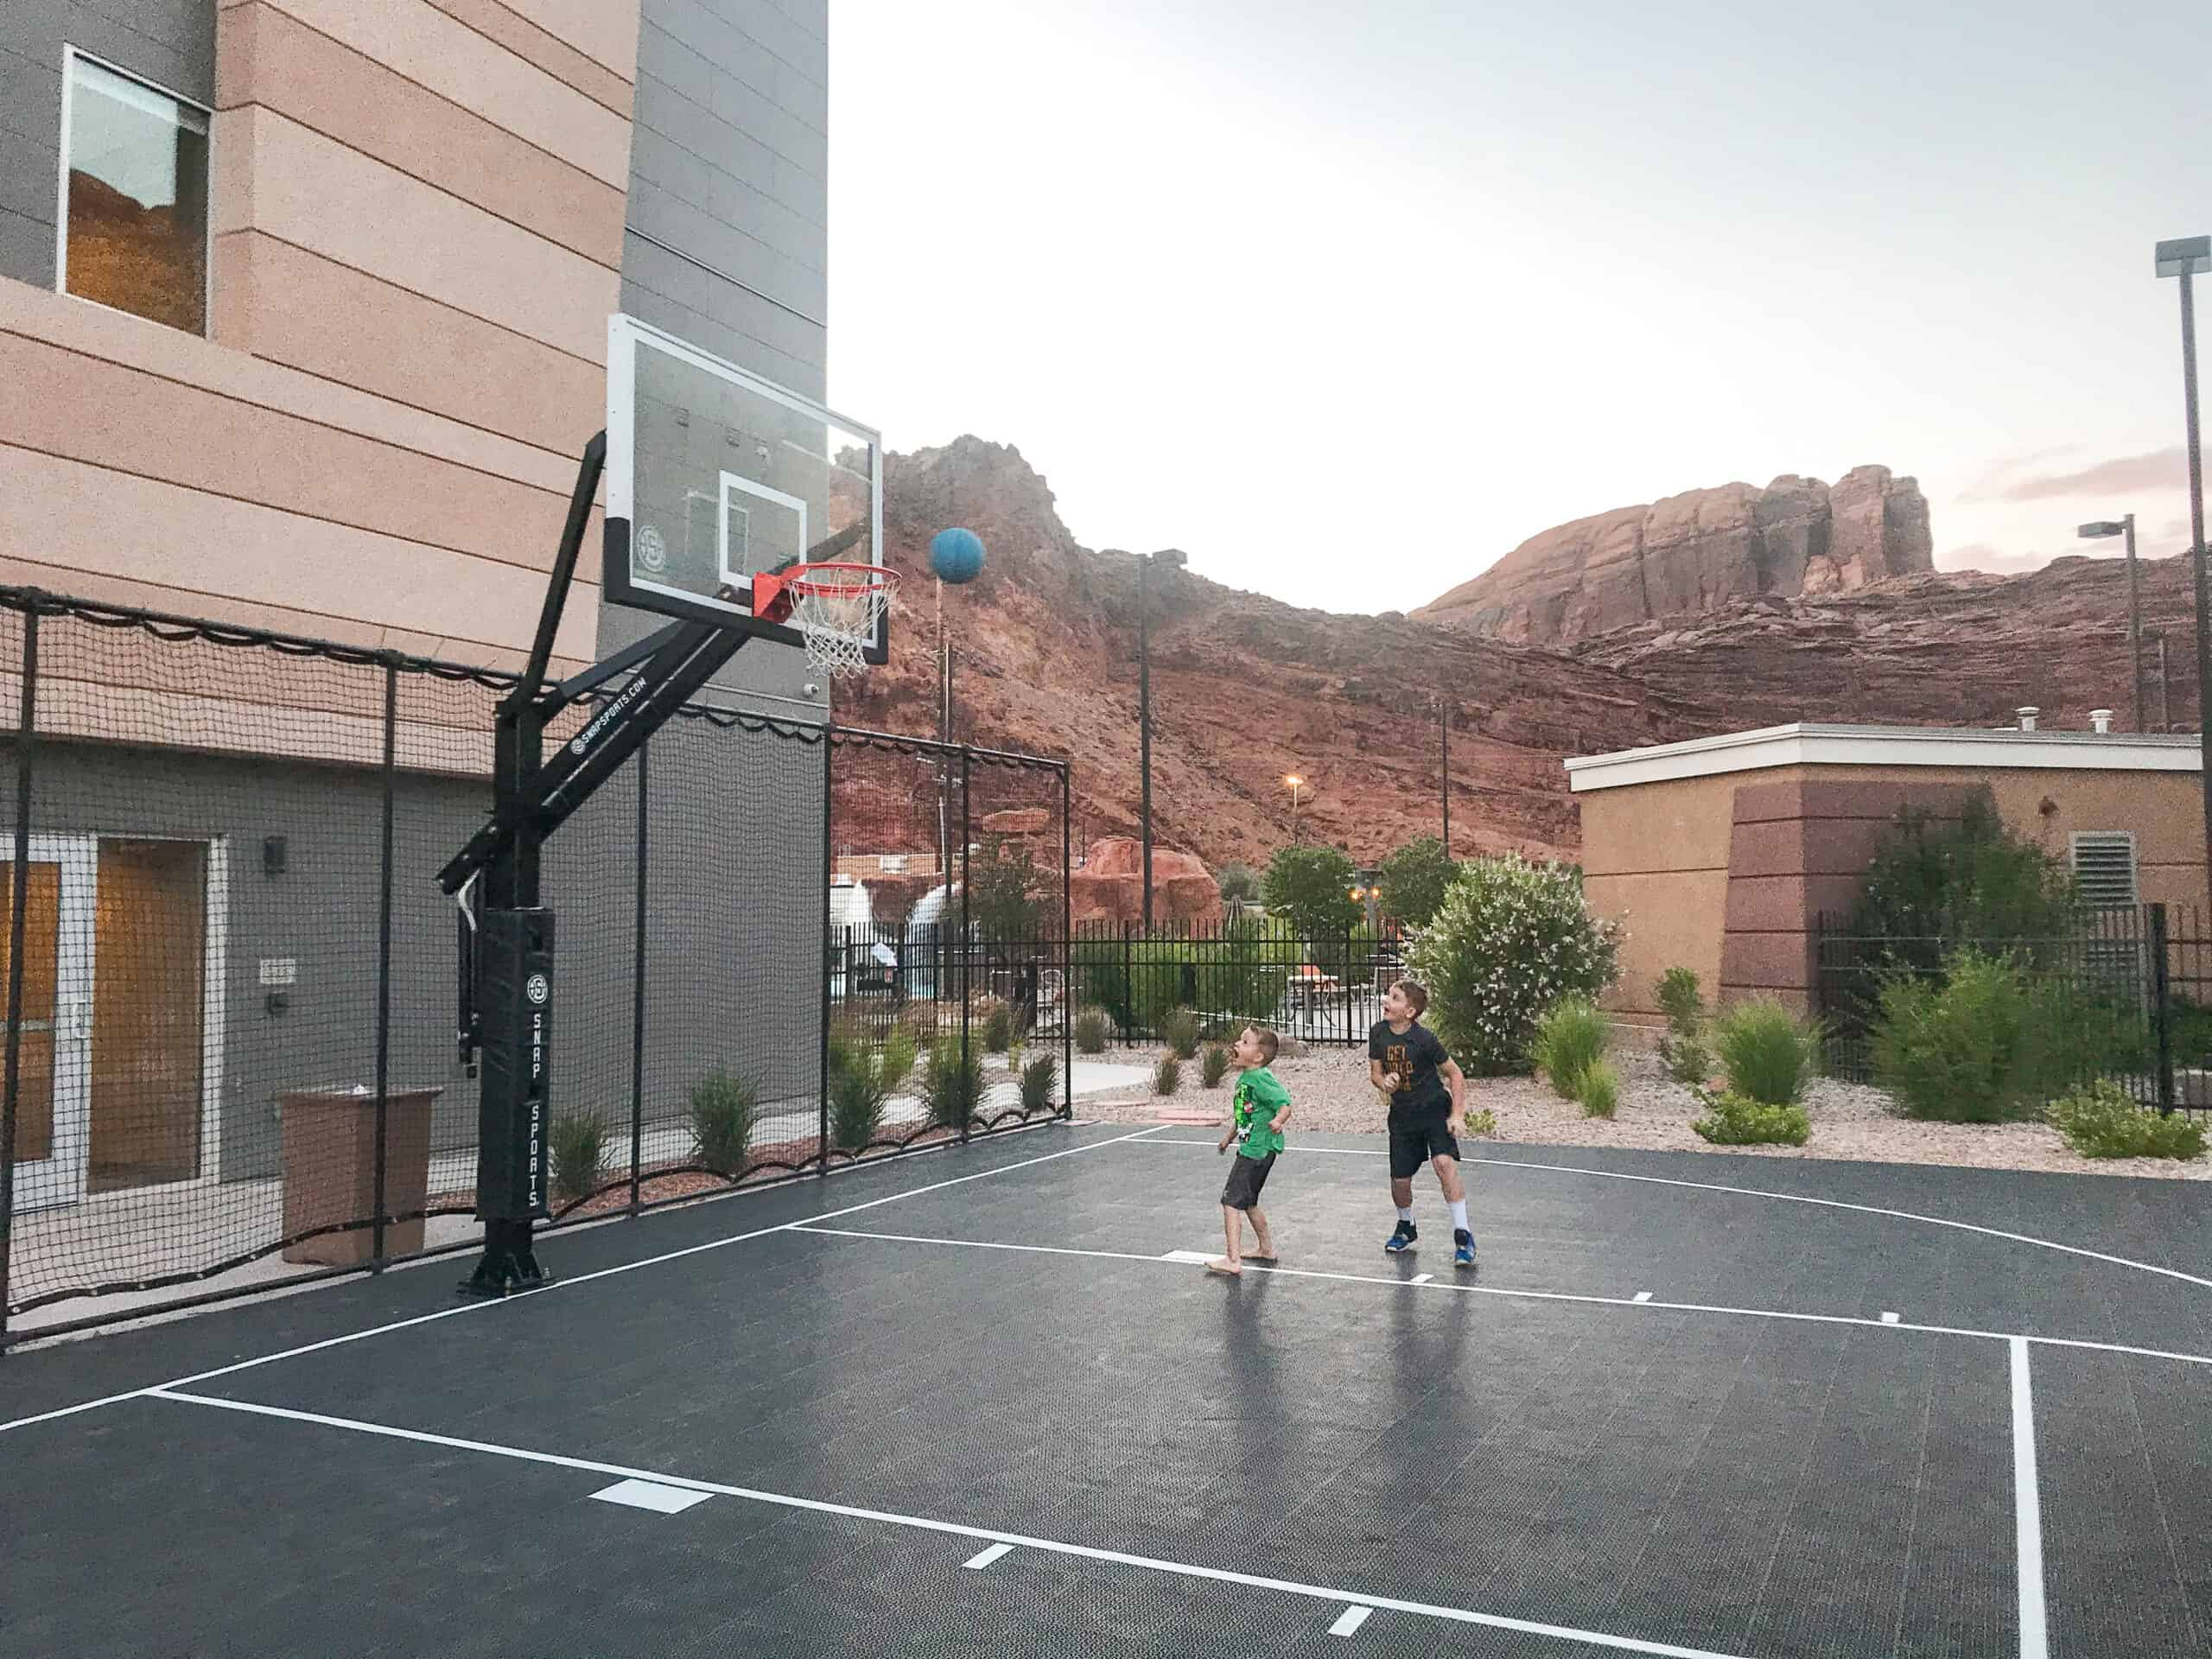 Basketball Court at Springhill Suites in Moab, Utah